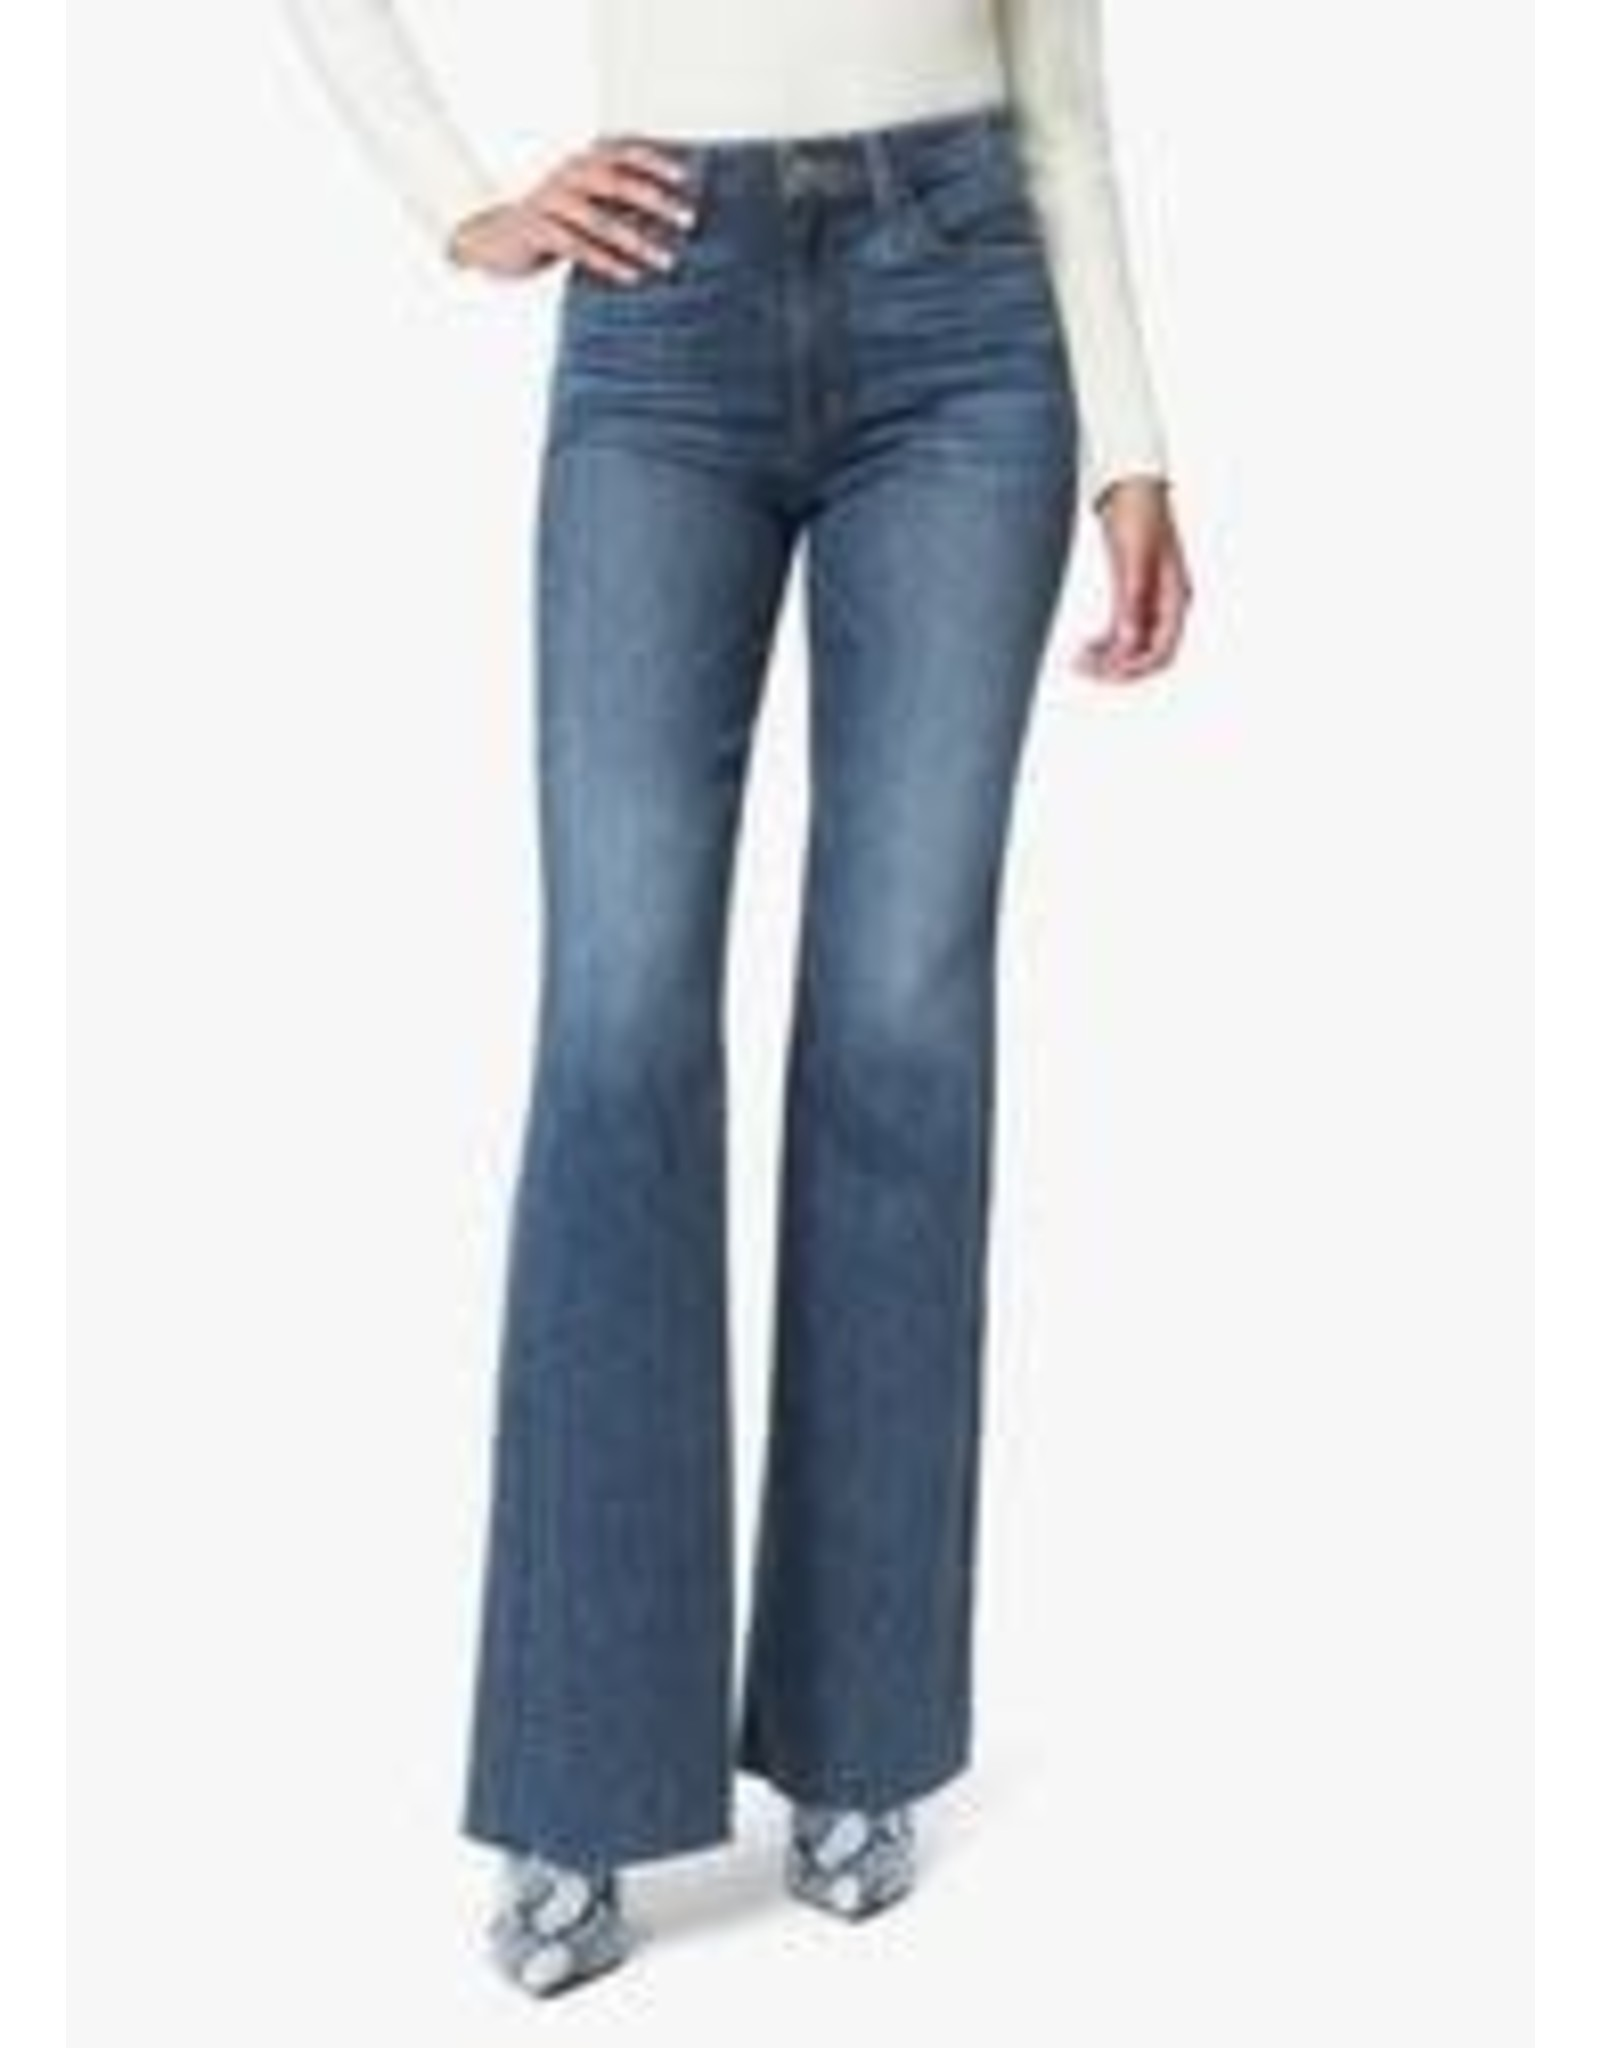 Joes Jeans Molly Flare Jean